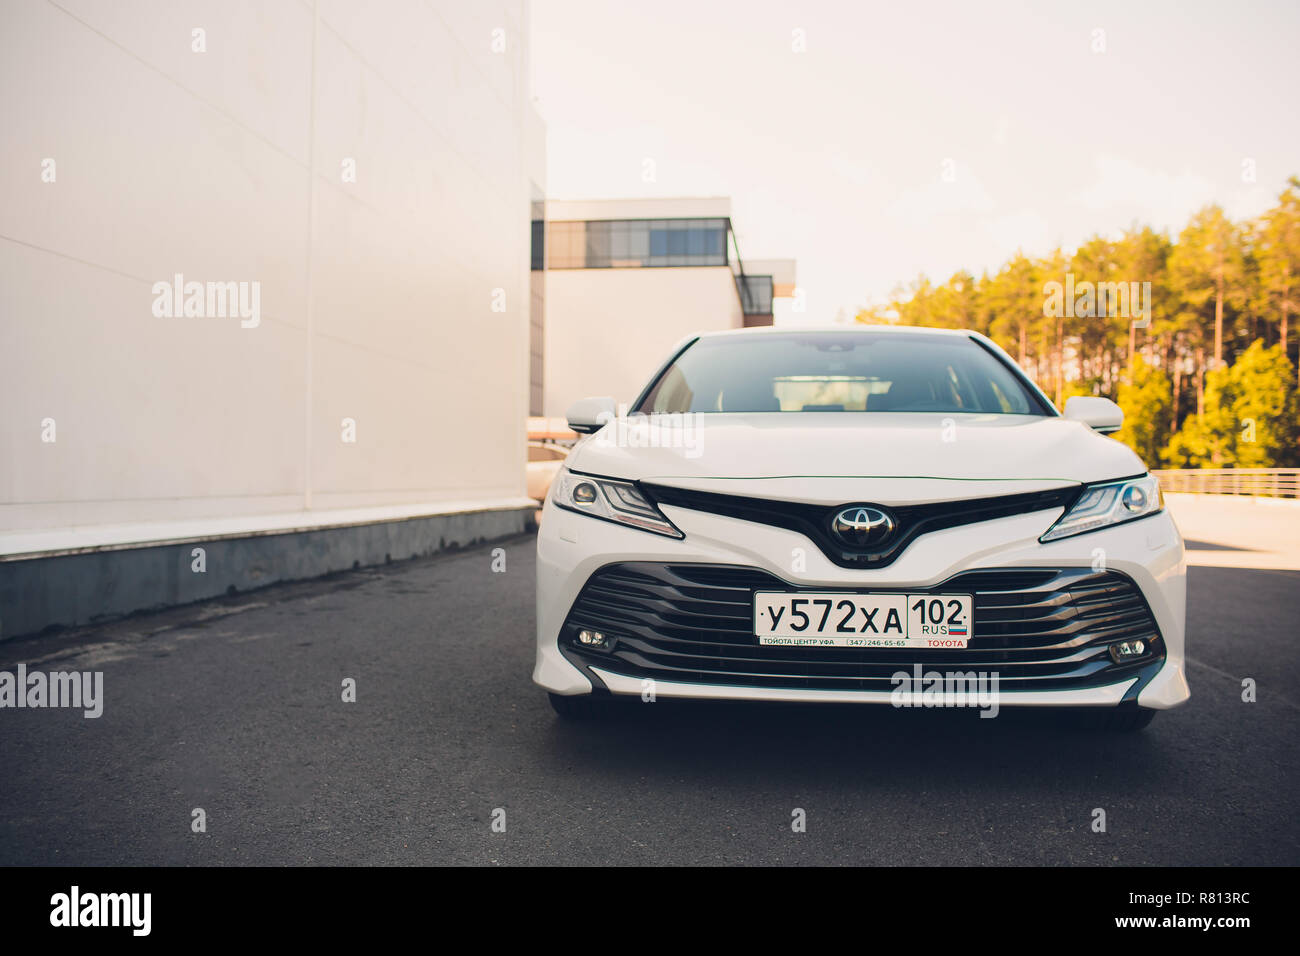 all new camry white yaris s 1500cc trd ufa russia 11 august 2018 brand toyota parked